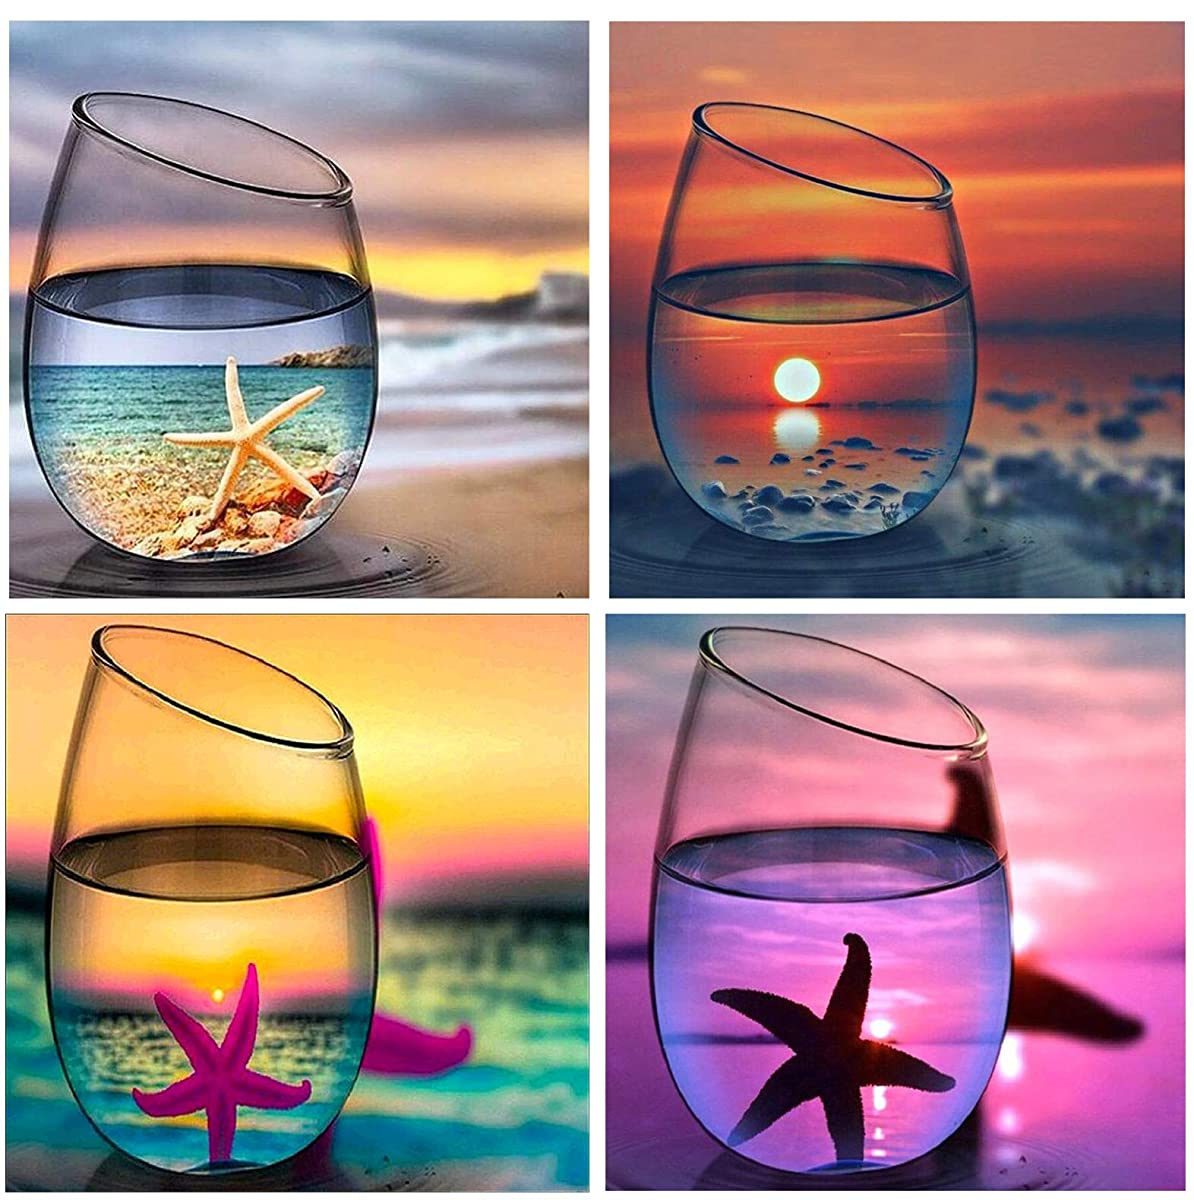 5D Full Drill Diamond Painting Kit,Hartop DIY Diamond Rhinestone Painting Kits Ocean Cups for Adults and Beginner,Embroidery Arts Craft Home Office Decor, 12X12 Inch